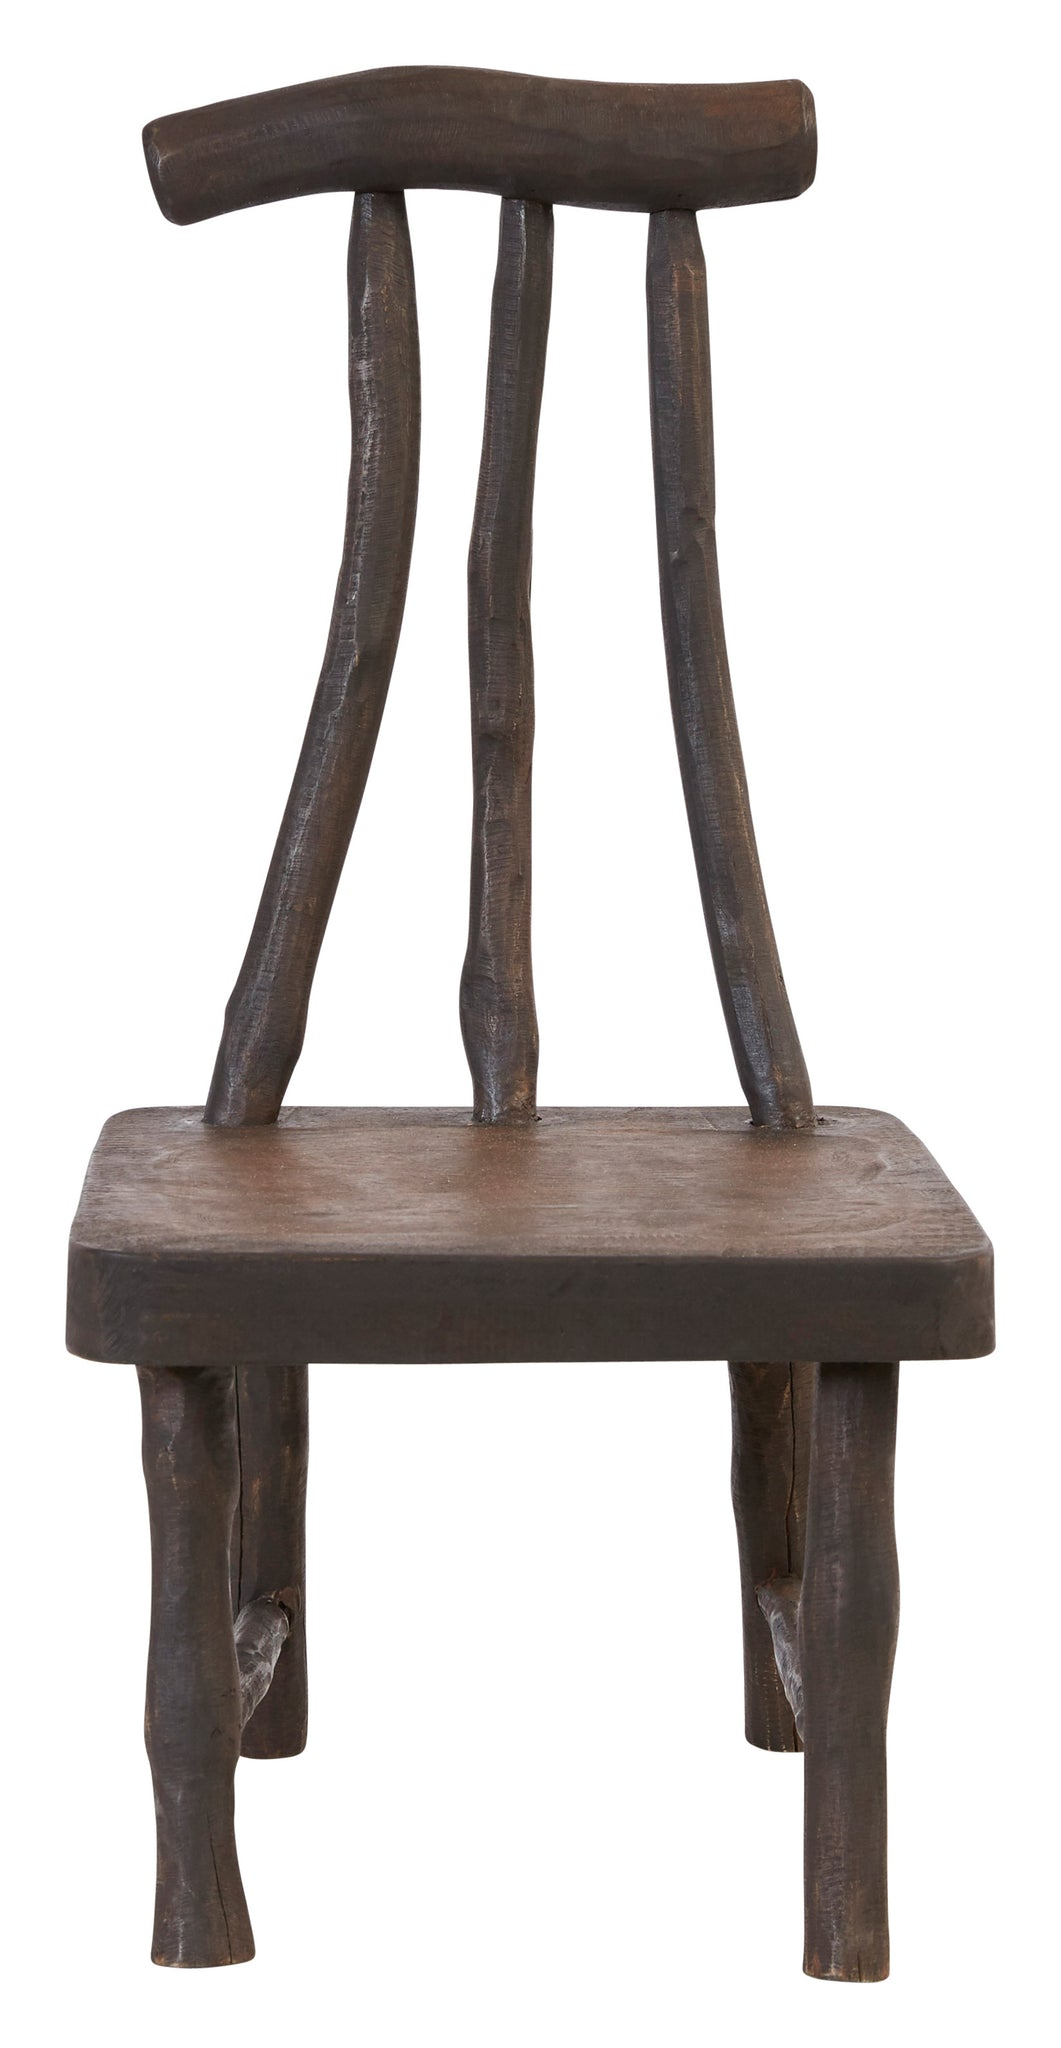 Small Rustic Mango Wood Chair